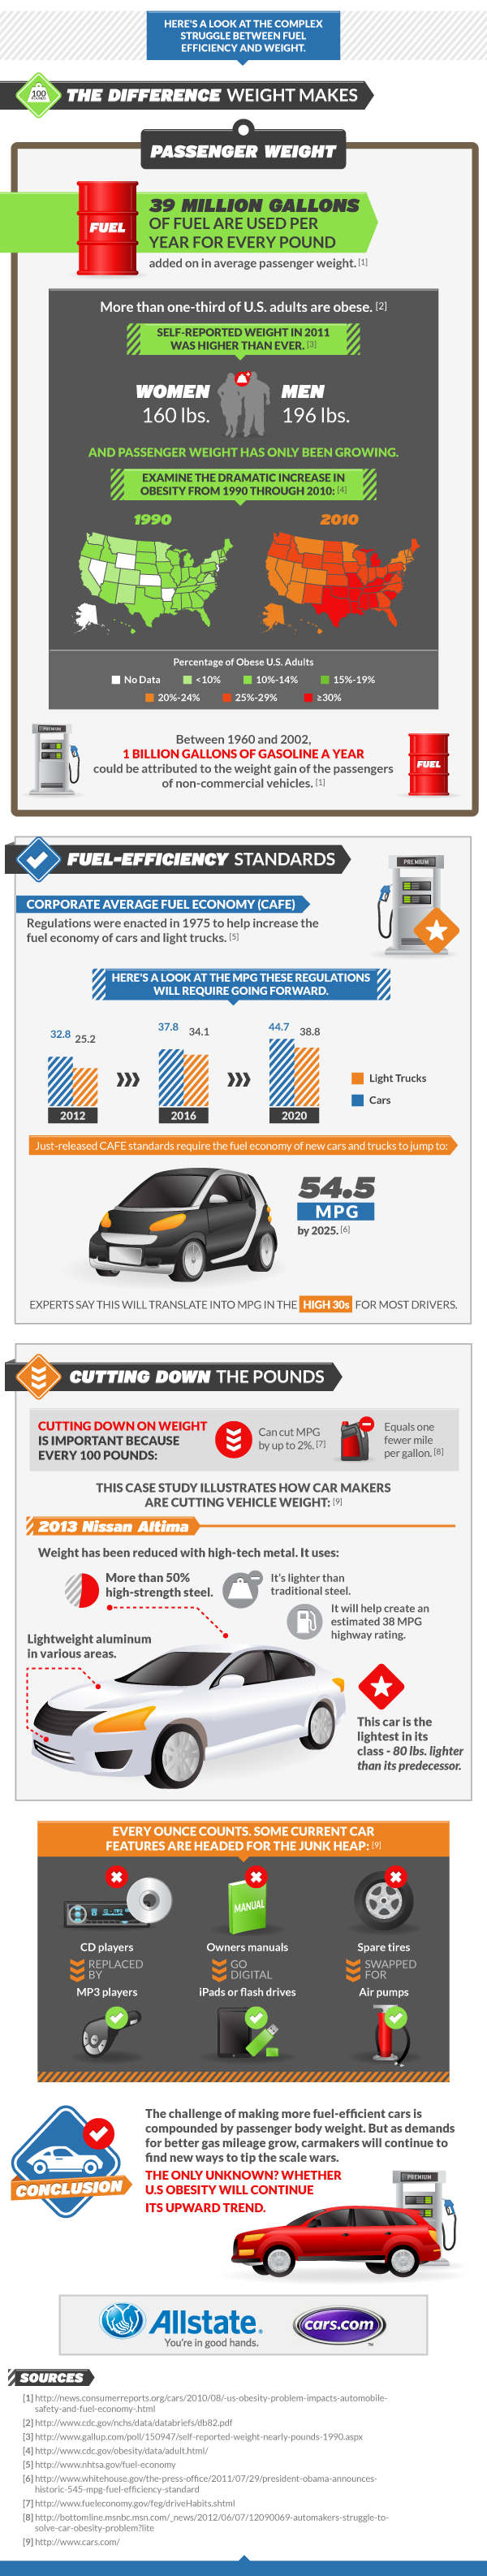 Obesity and Fuel Economy